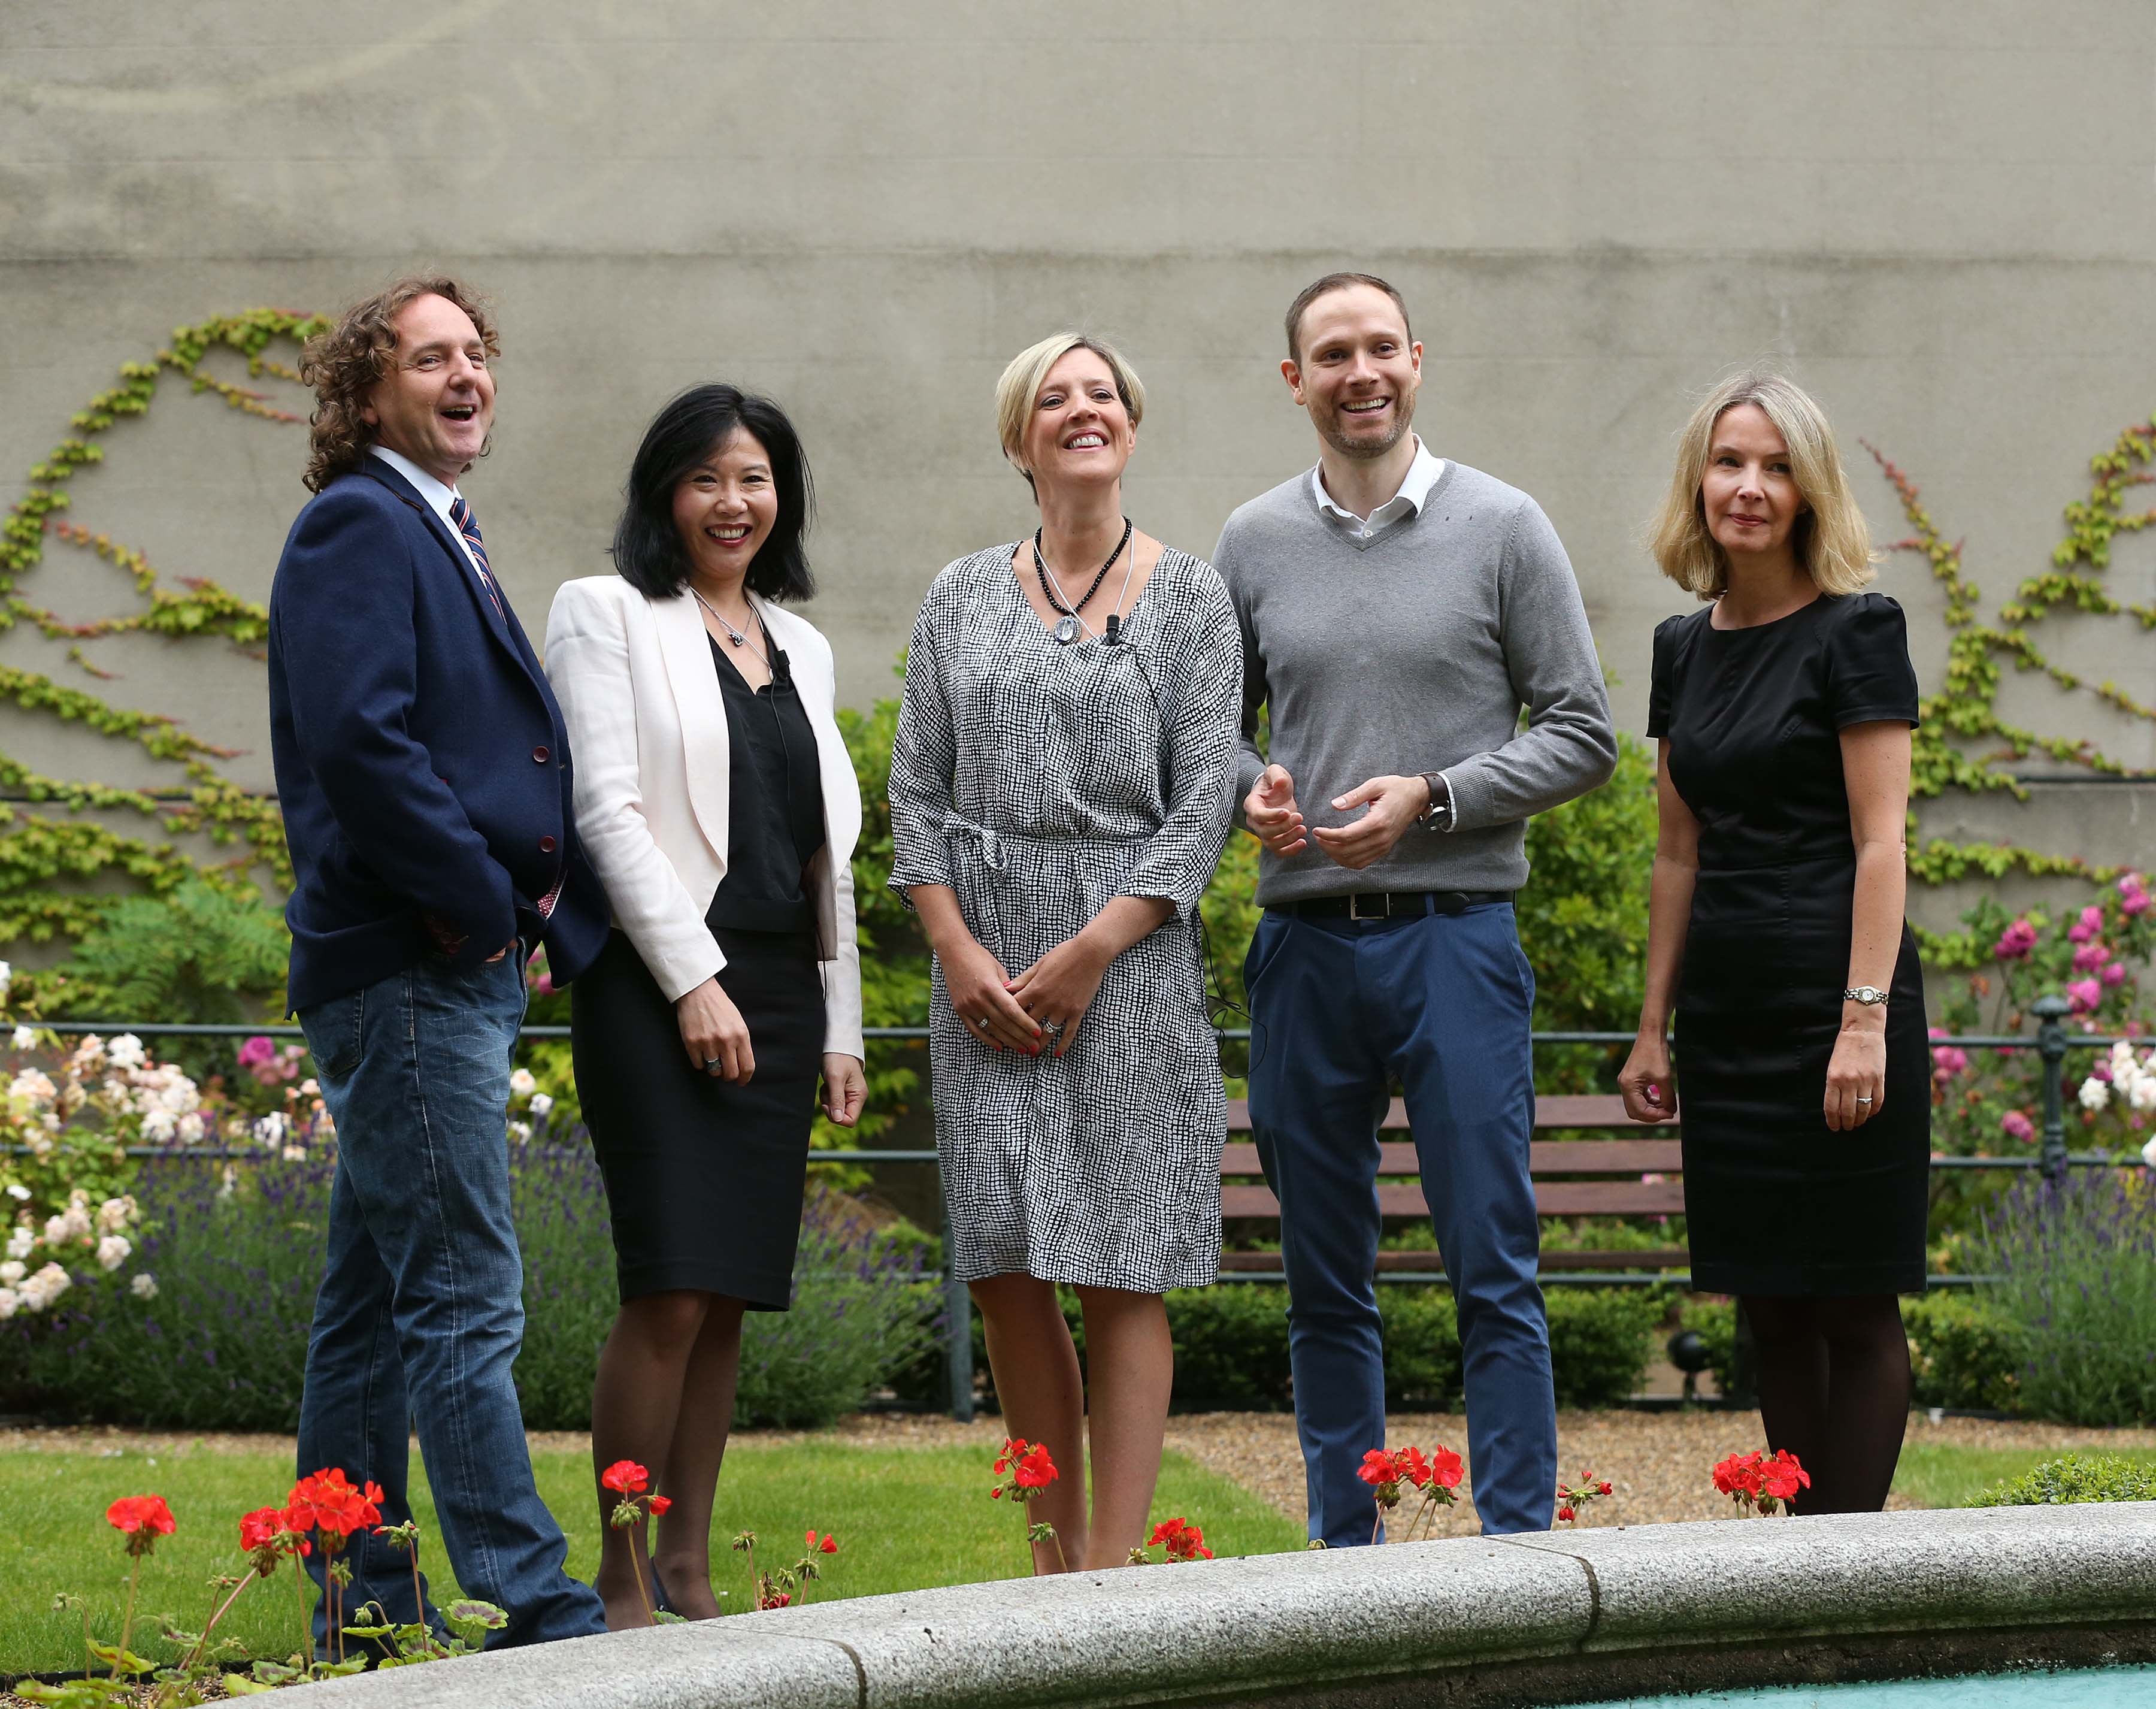 Paul Henderson, Michelle Lee, Sharon Walsh, Michael Clancy and Gervaise Slowey